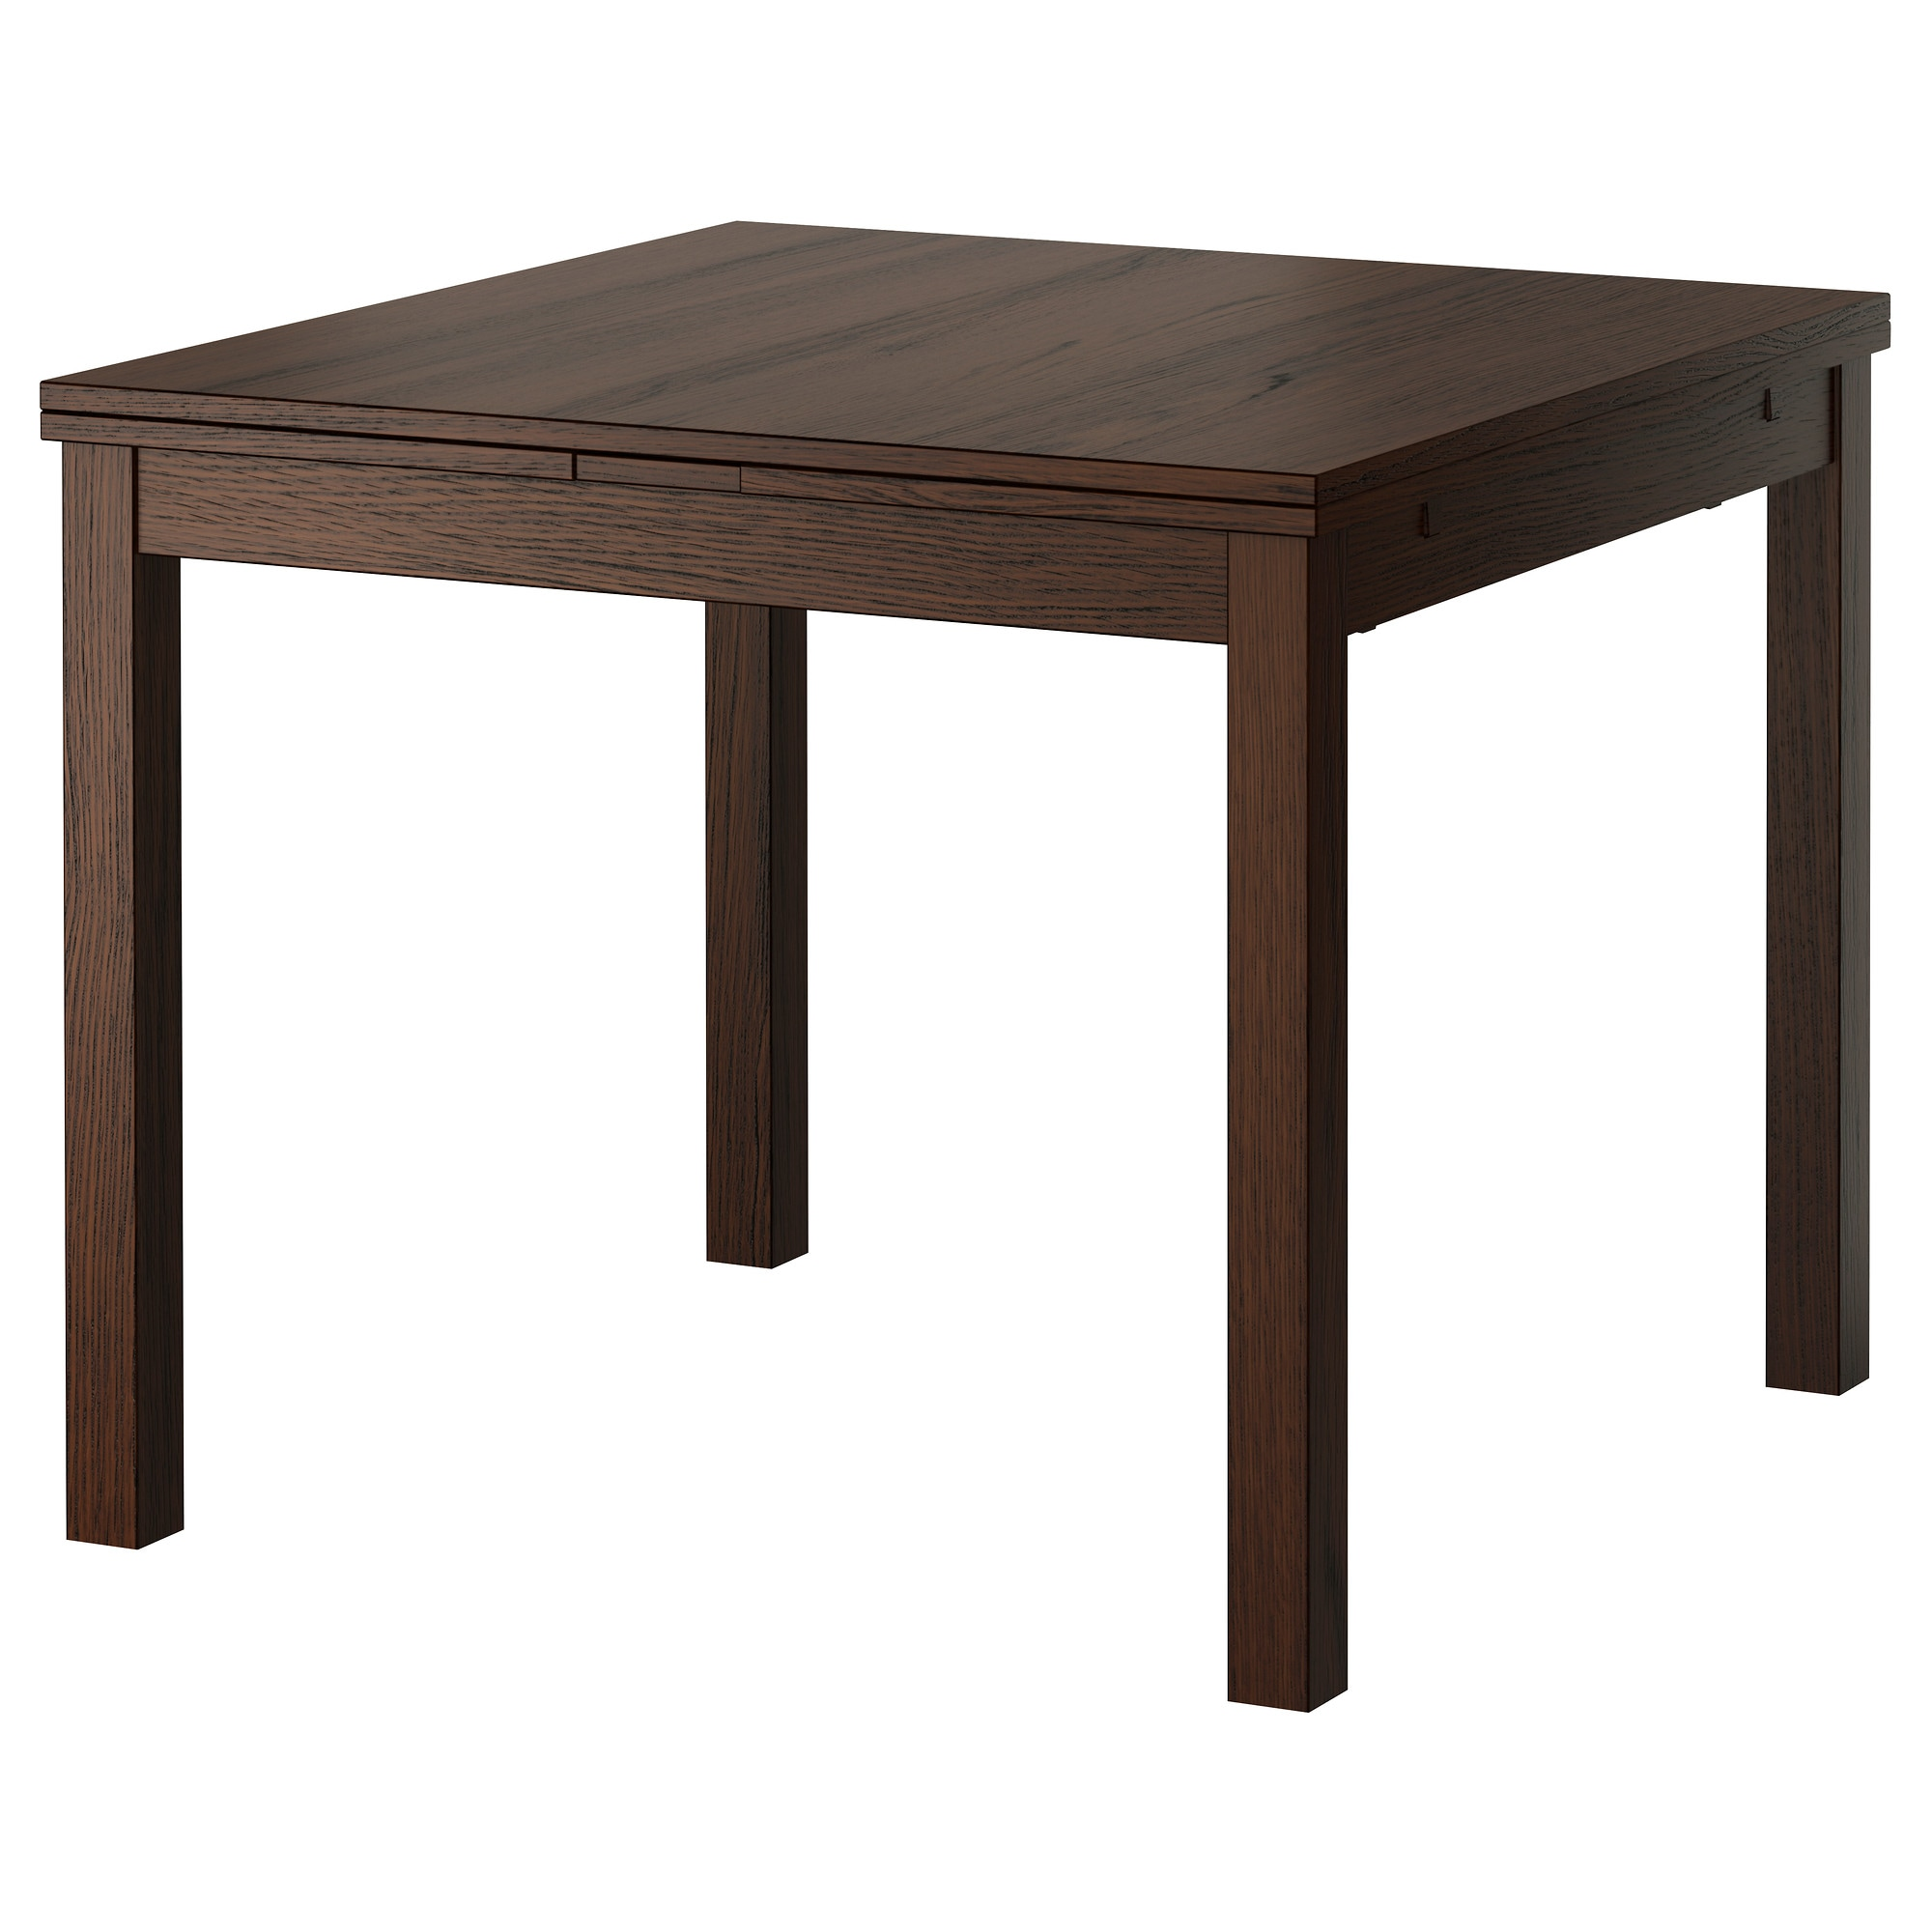 Wooden square dining table - Wooden Square Dining Table 15